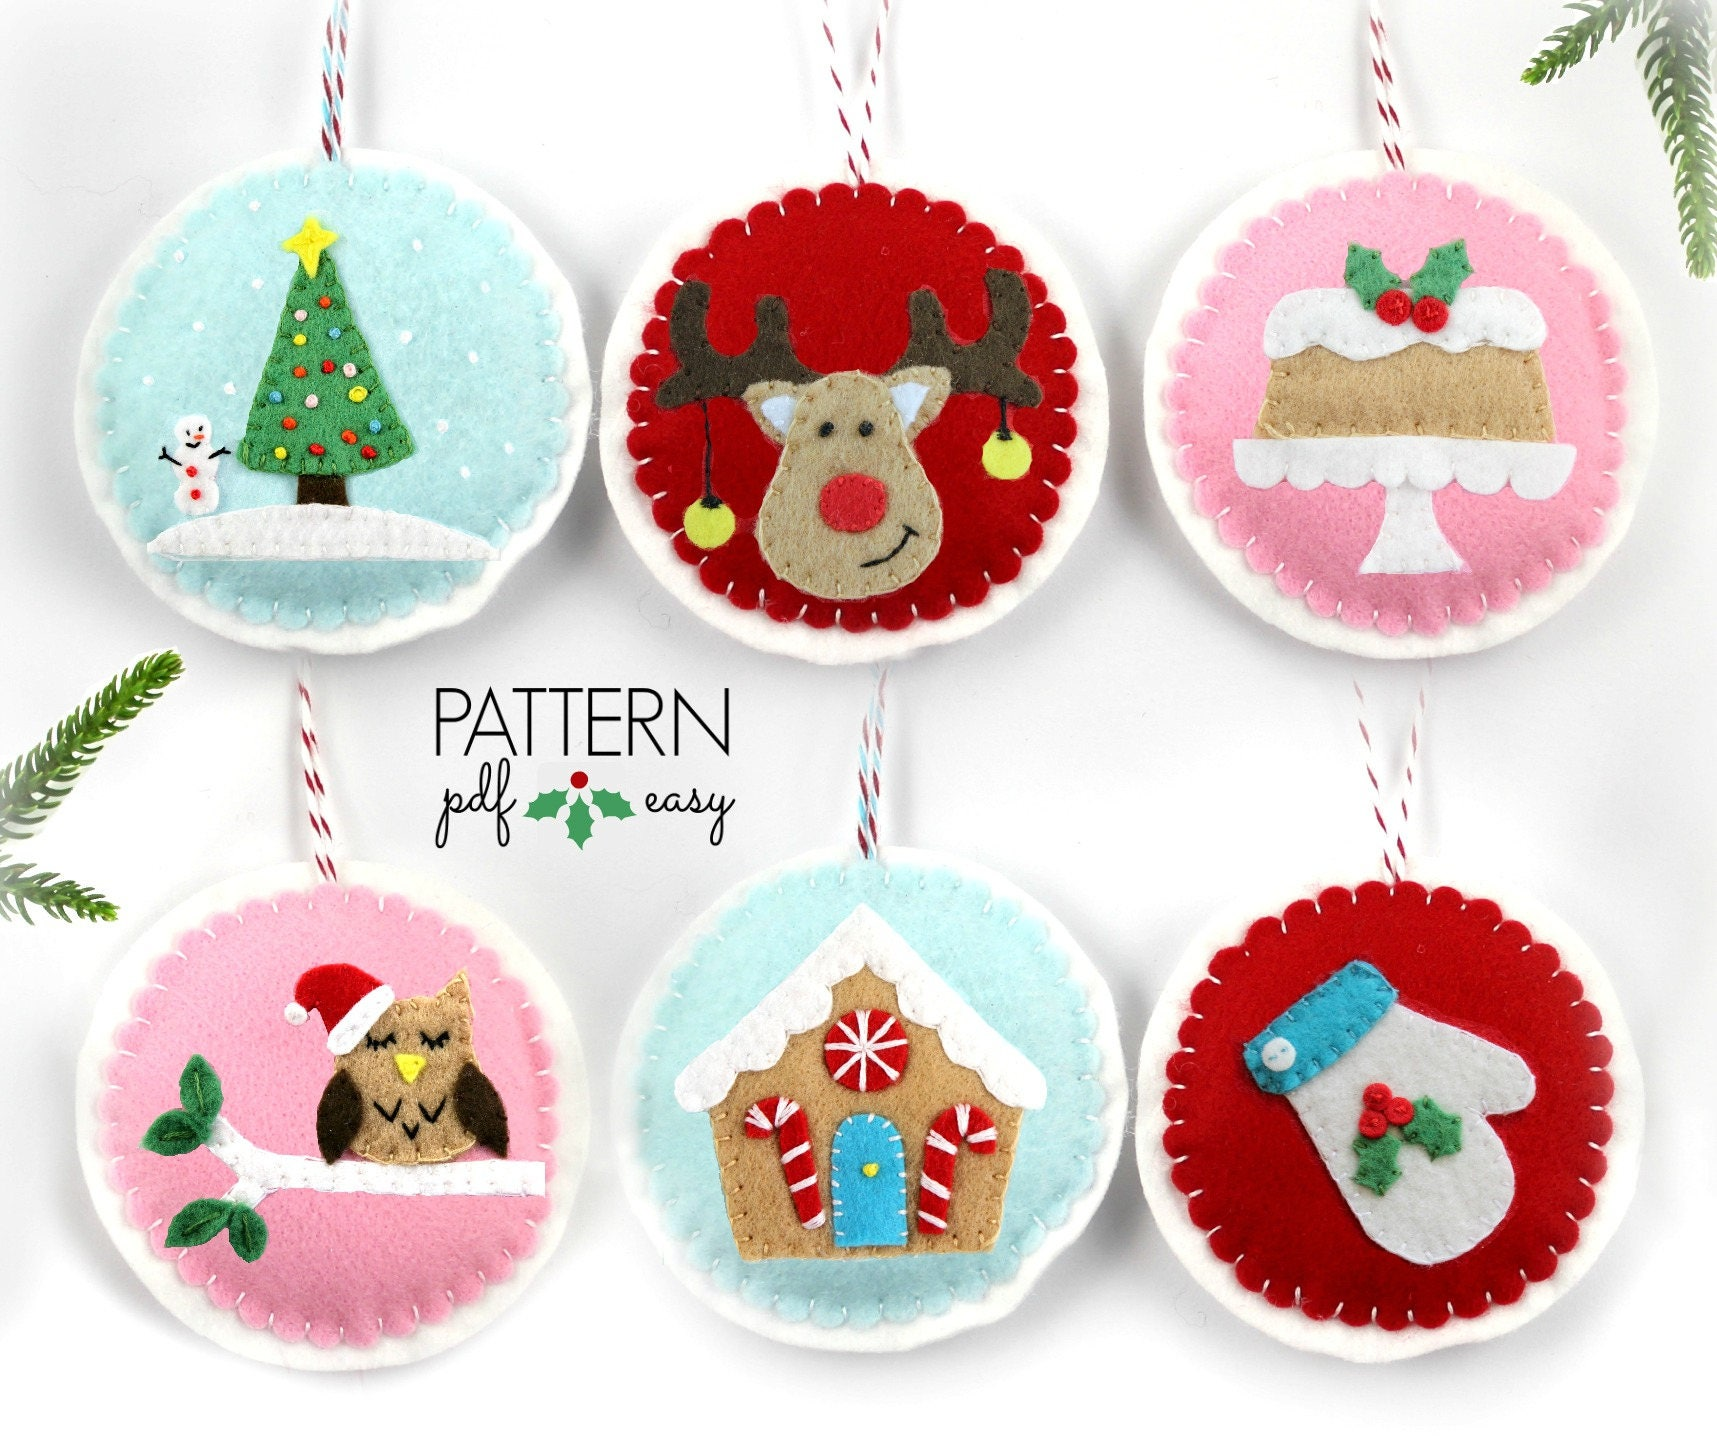 Christmas Felt Decorations Patterns: Christmas Ornament Pattern, Felt Christmas Ornament, DIY